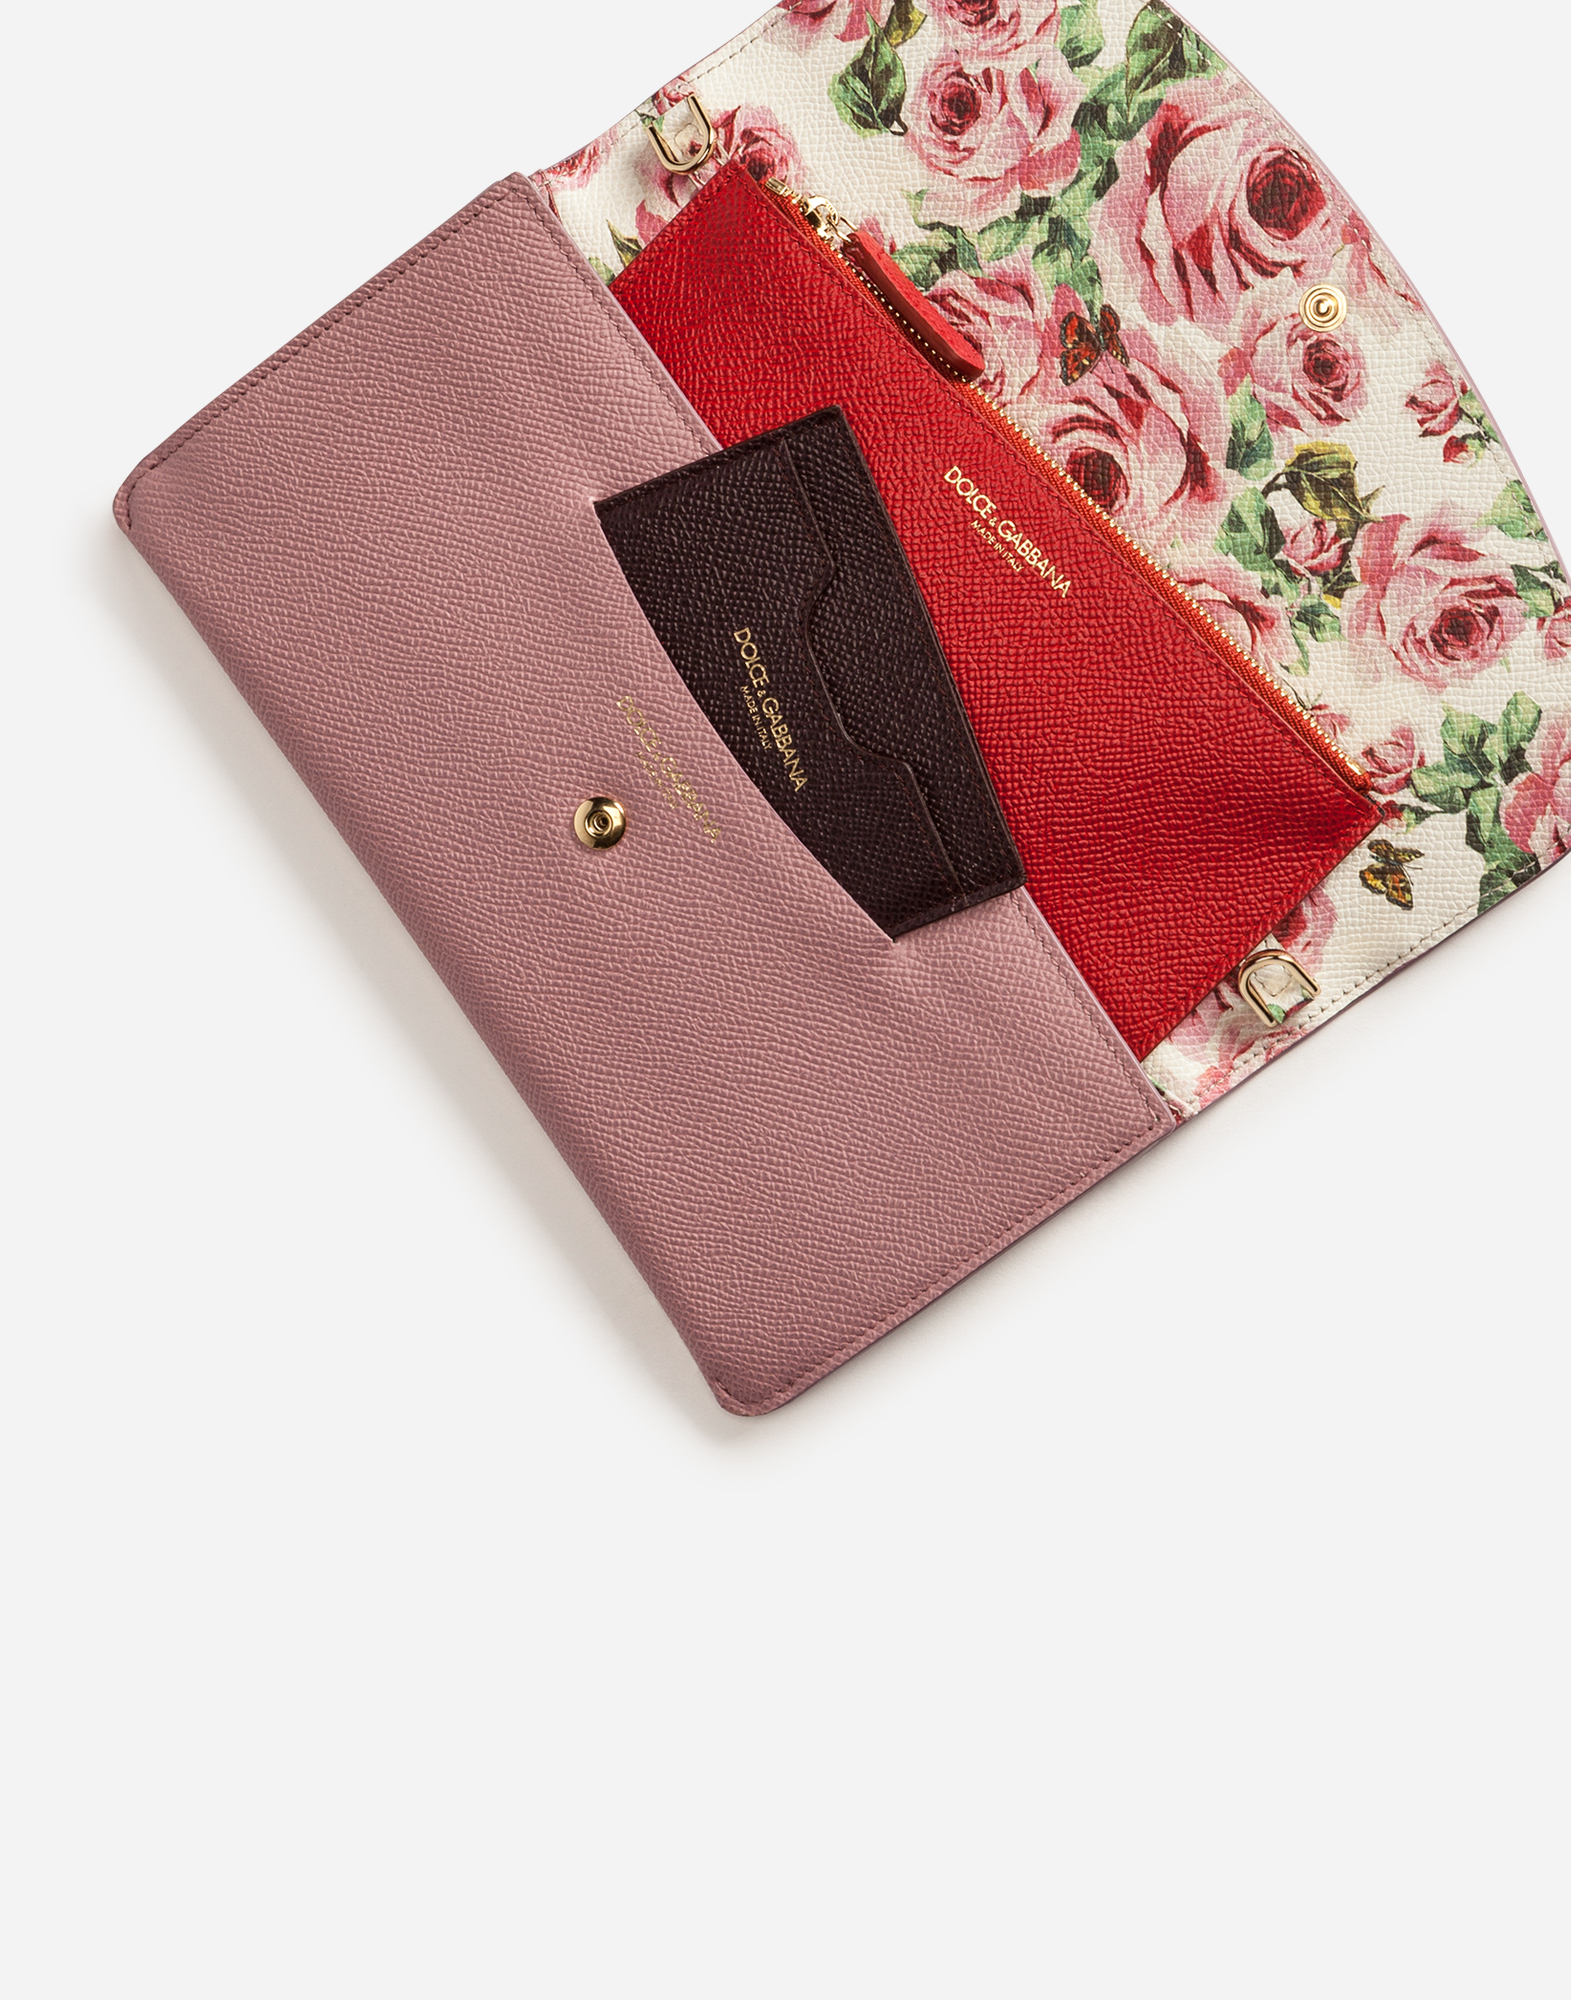 Dolce&Gabbana WALLET BAG IN PRINTED DAUPHINE CALFSKIN